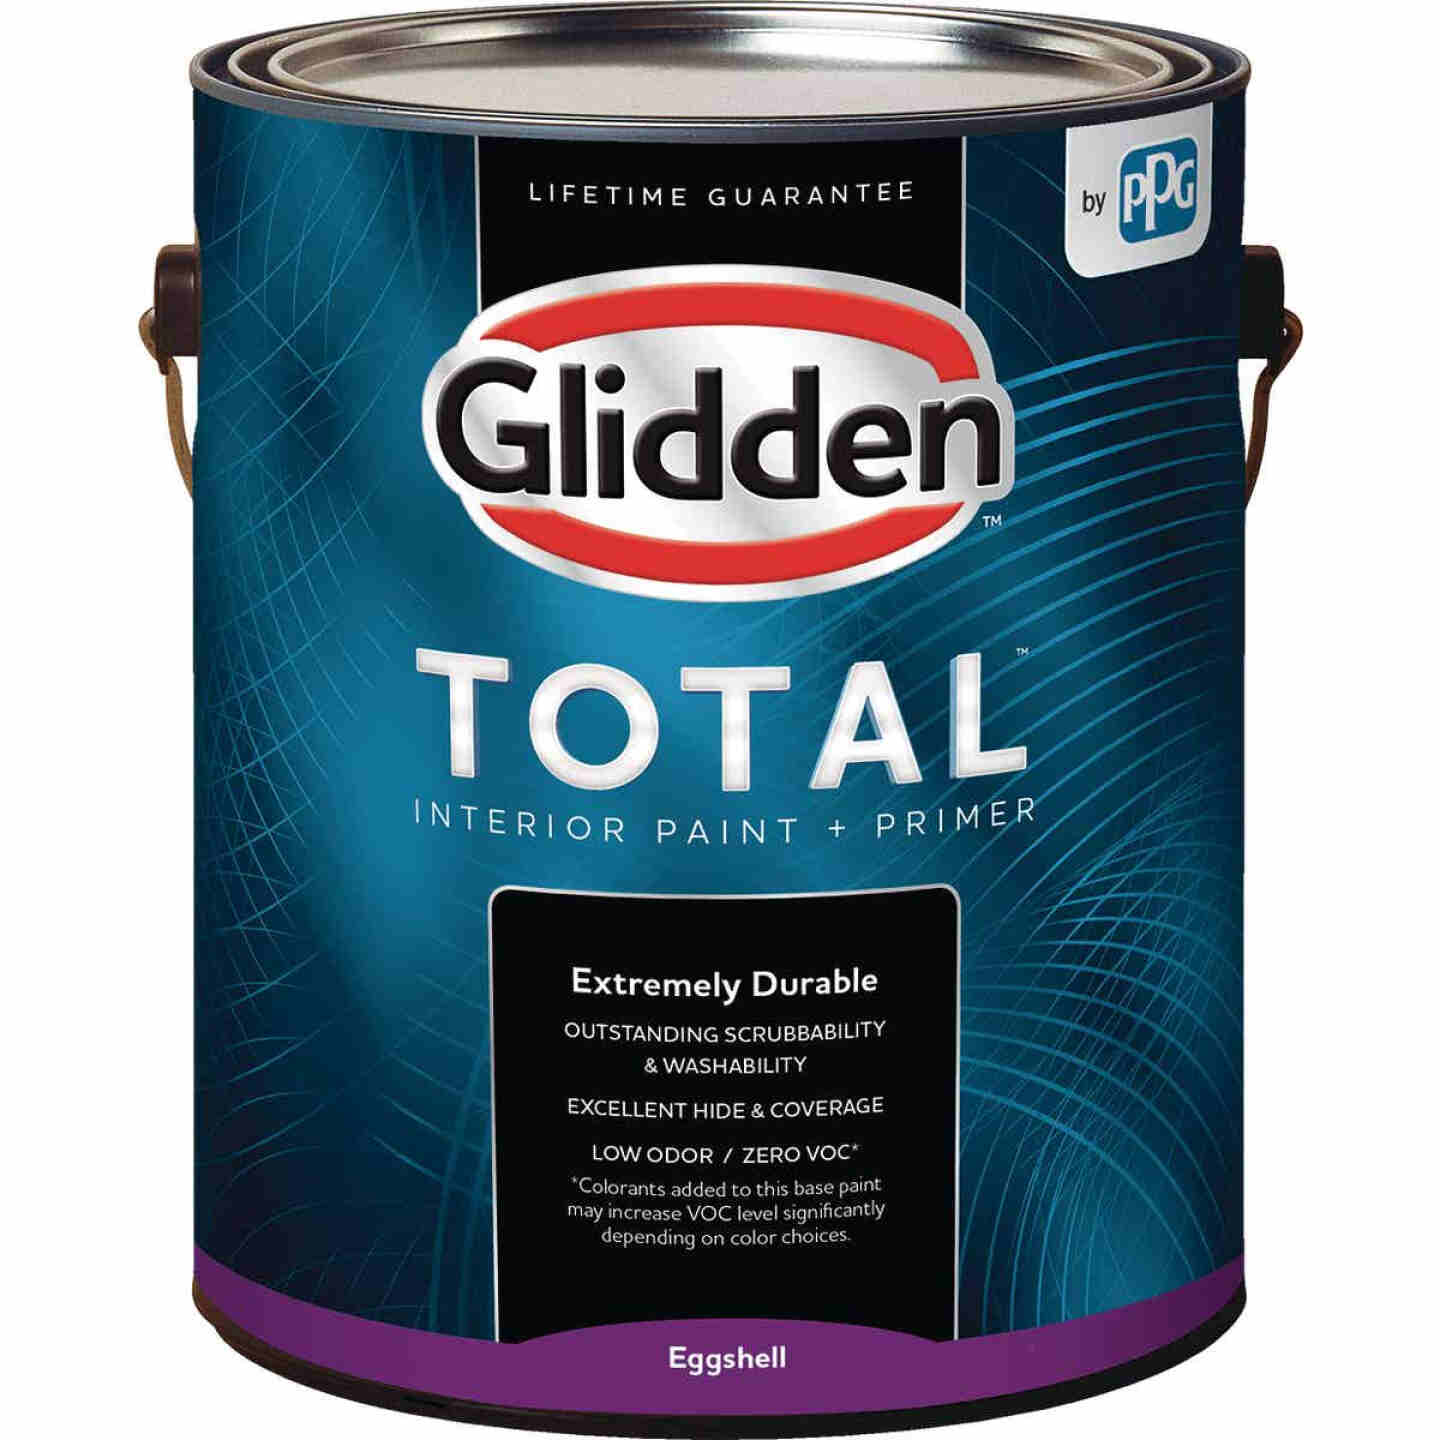 Glidden Total Interior Paint + Primer Eggshell White & Pastel Base 1 Gallon Image 1